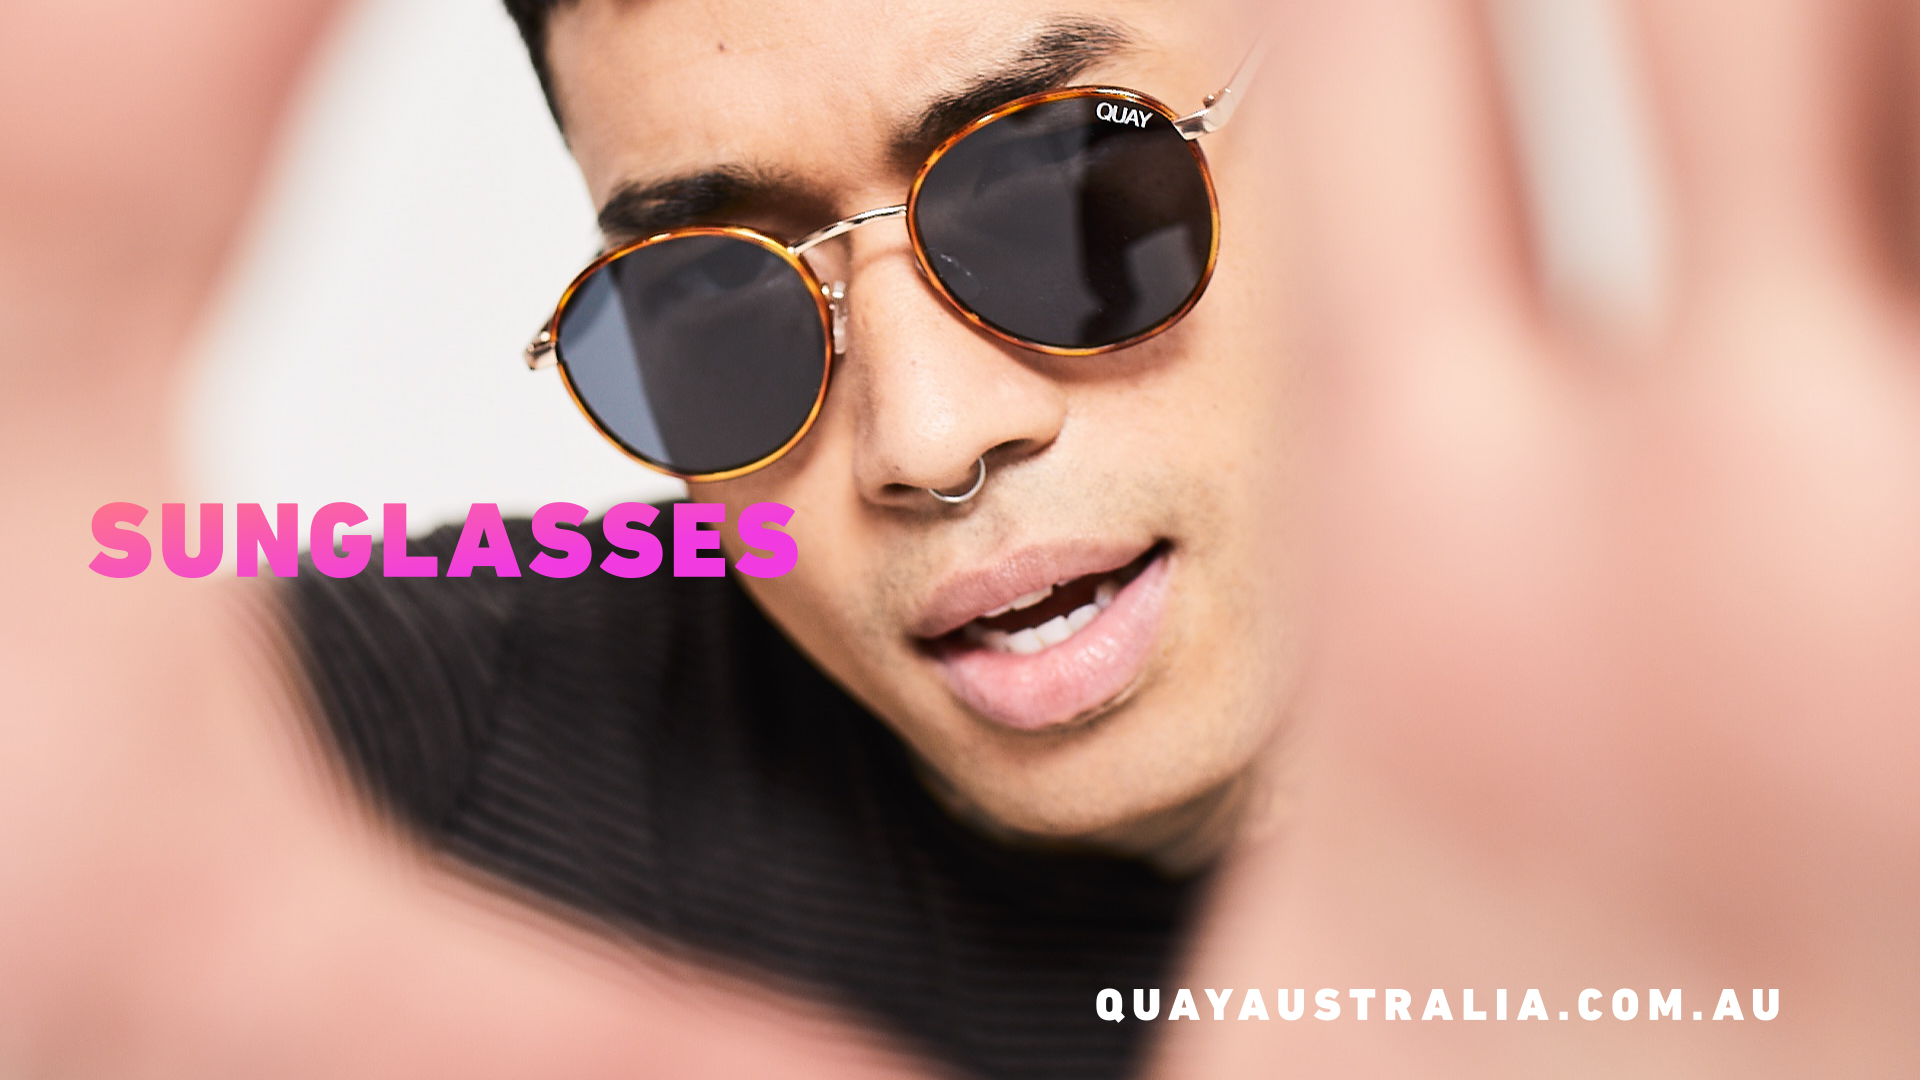 Eyewear brand Quay launches first national TV campaign 'Stay Shady' via Advertising Advantage